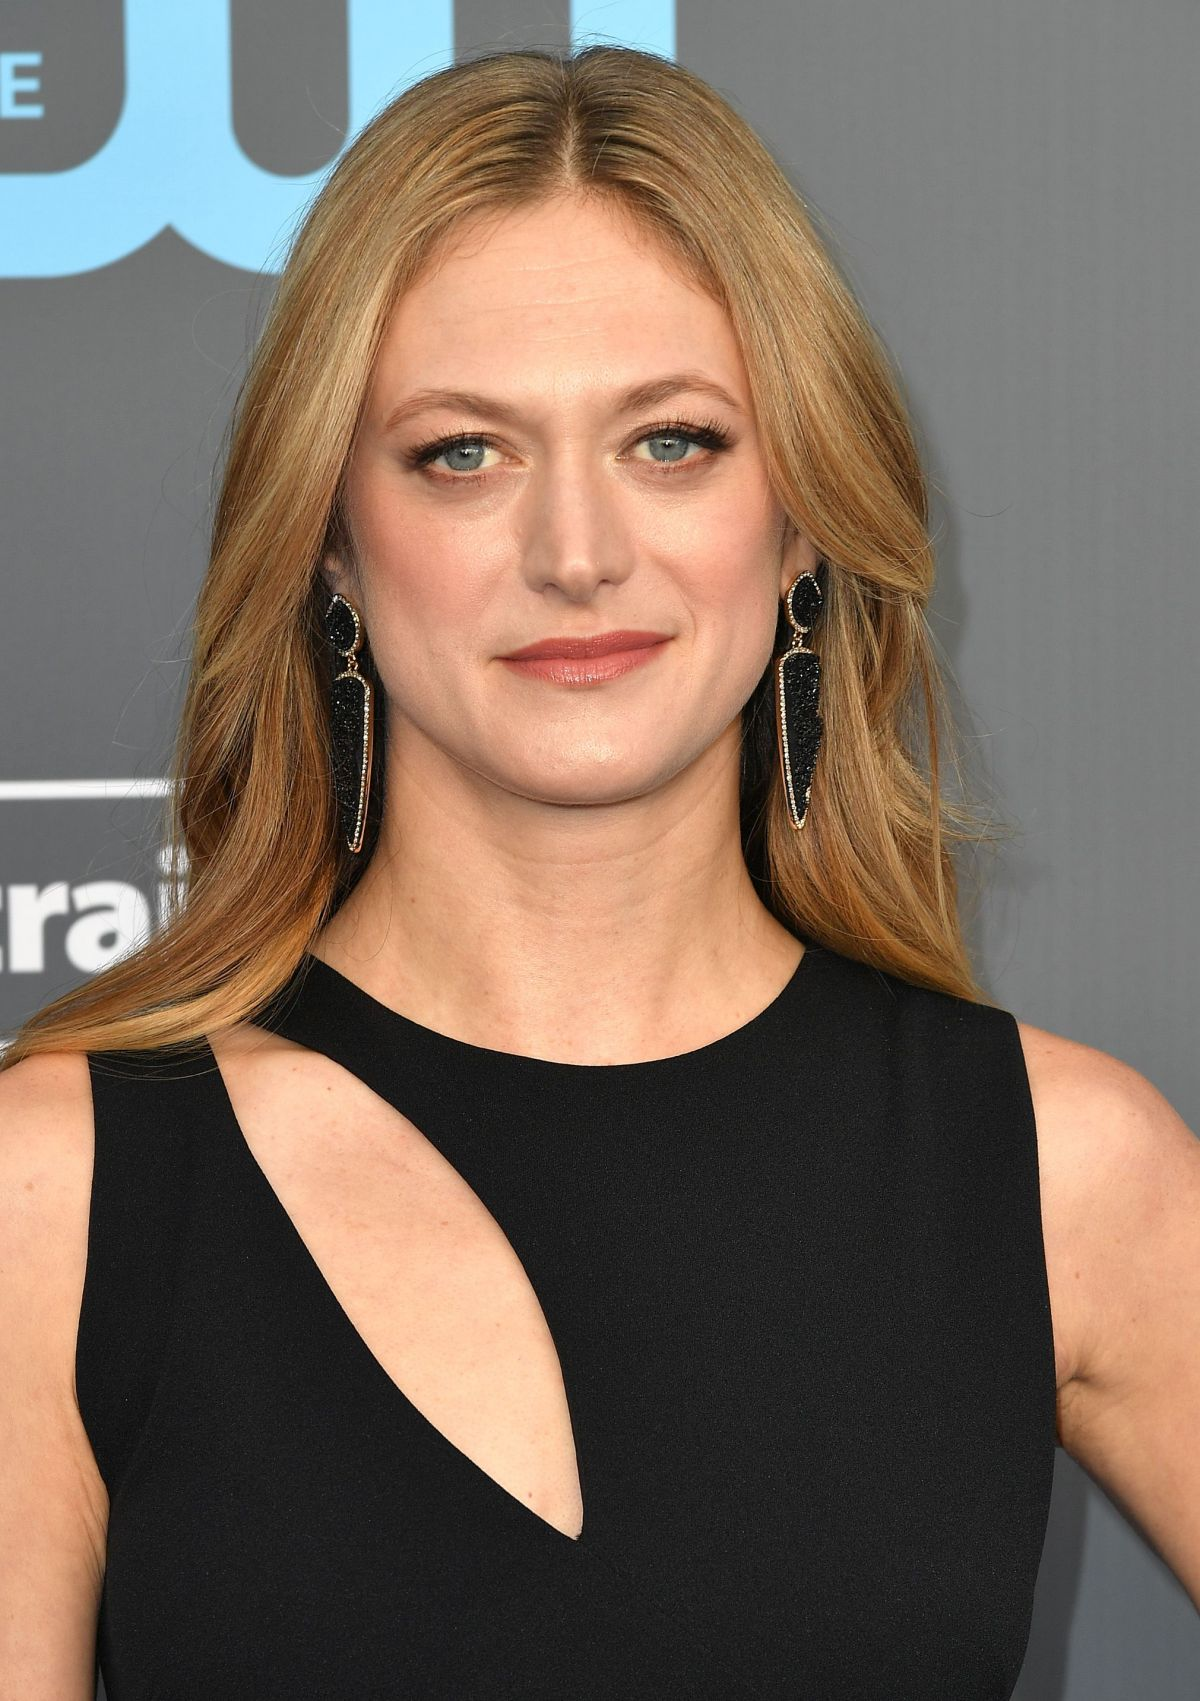 Marin Ireland nudes (78 photo), Ass, Leaked, Twitter, lingerie 2018